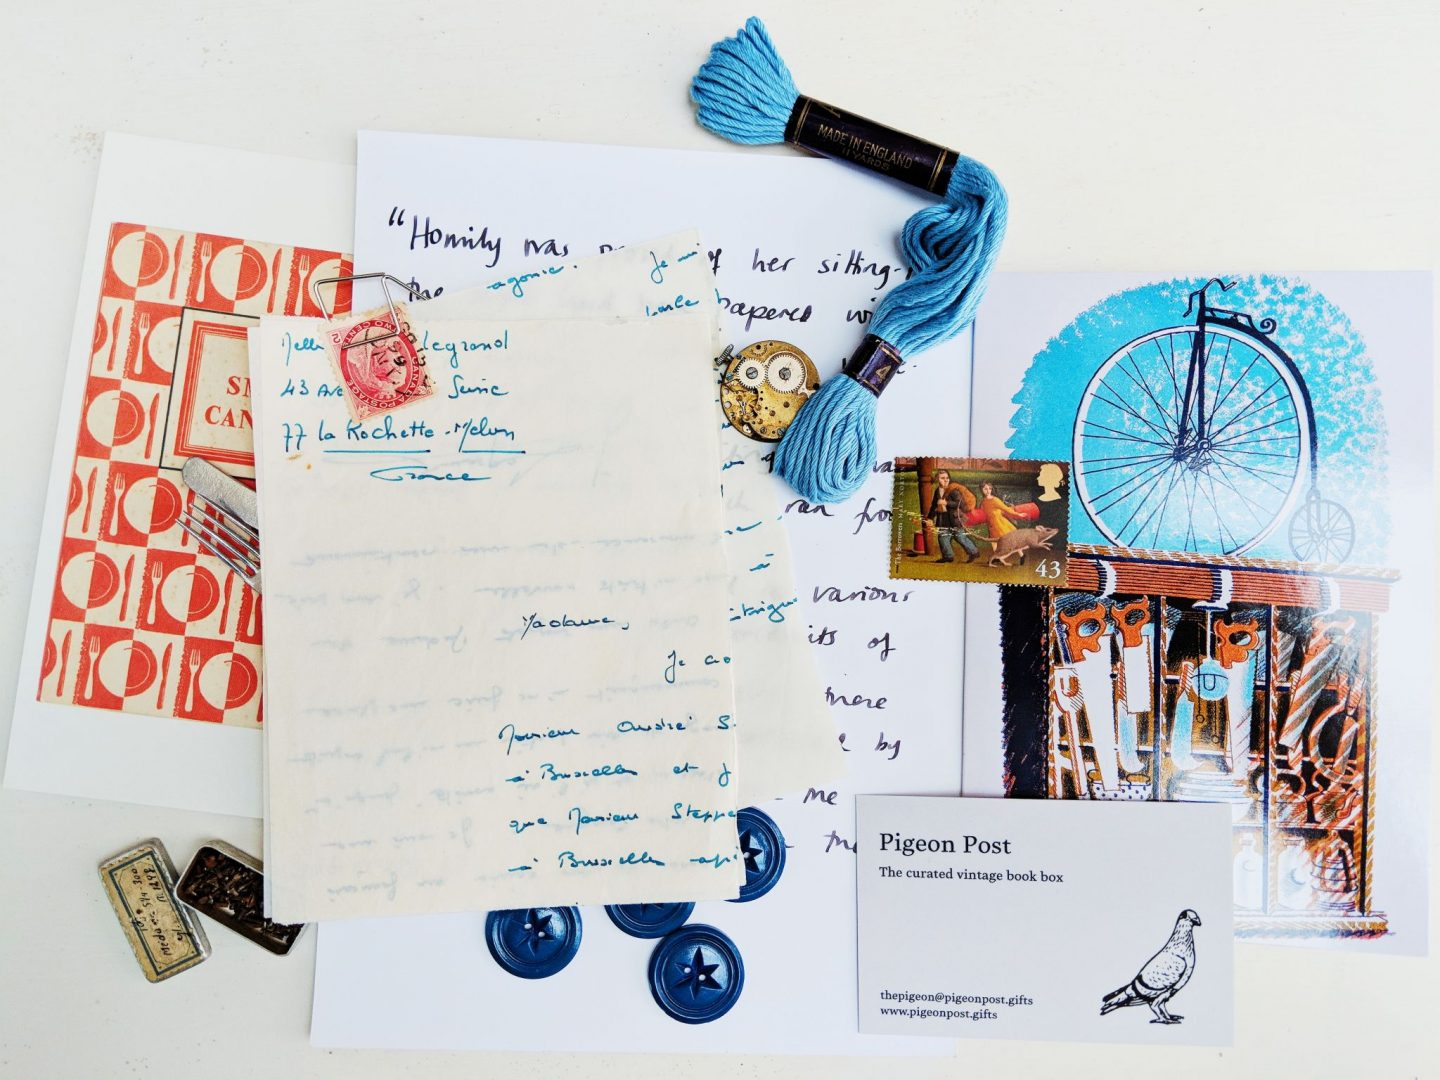 pigeon post gifts book box contents